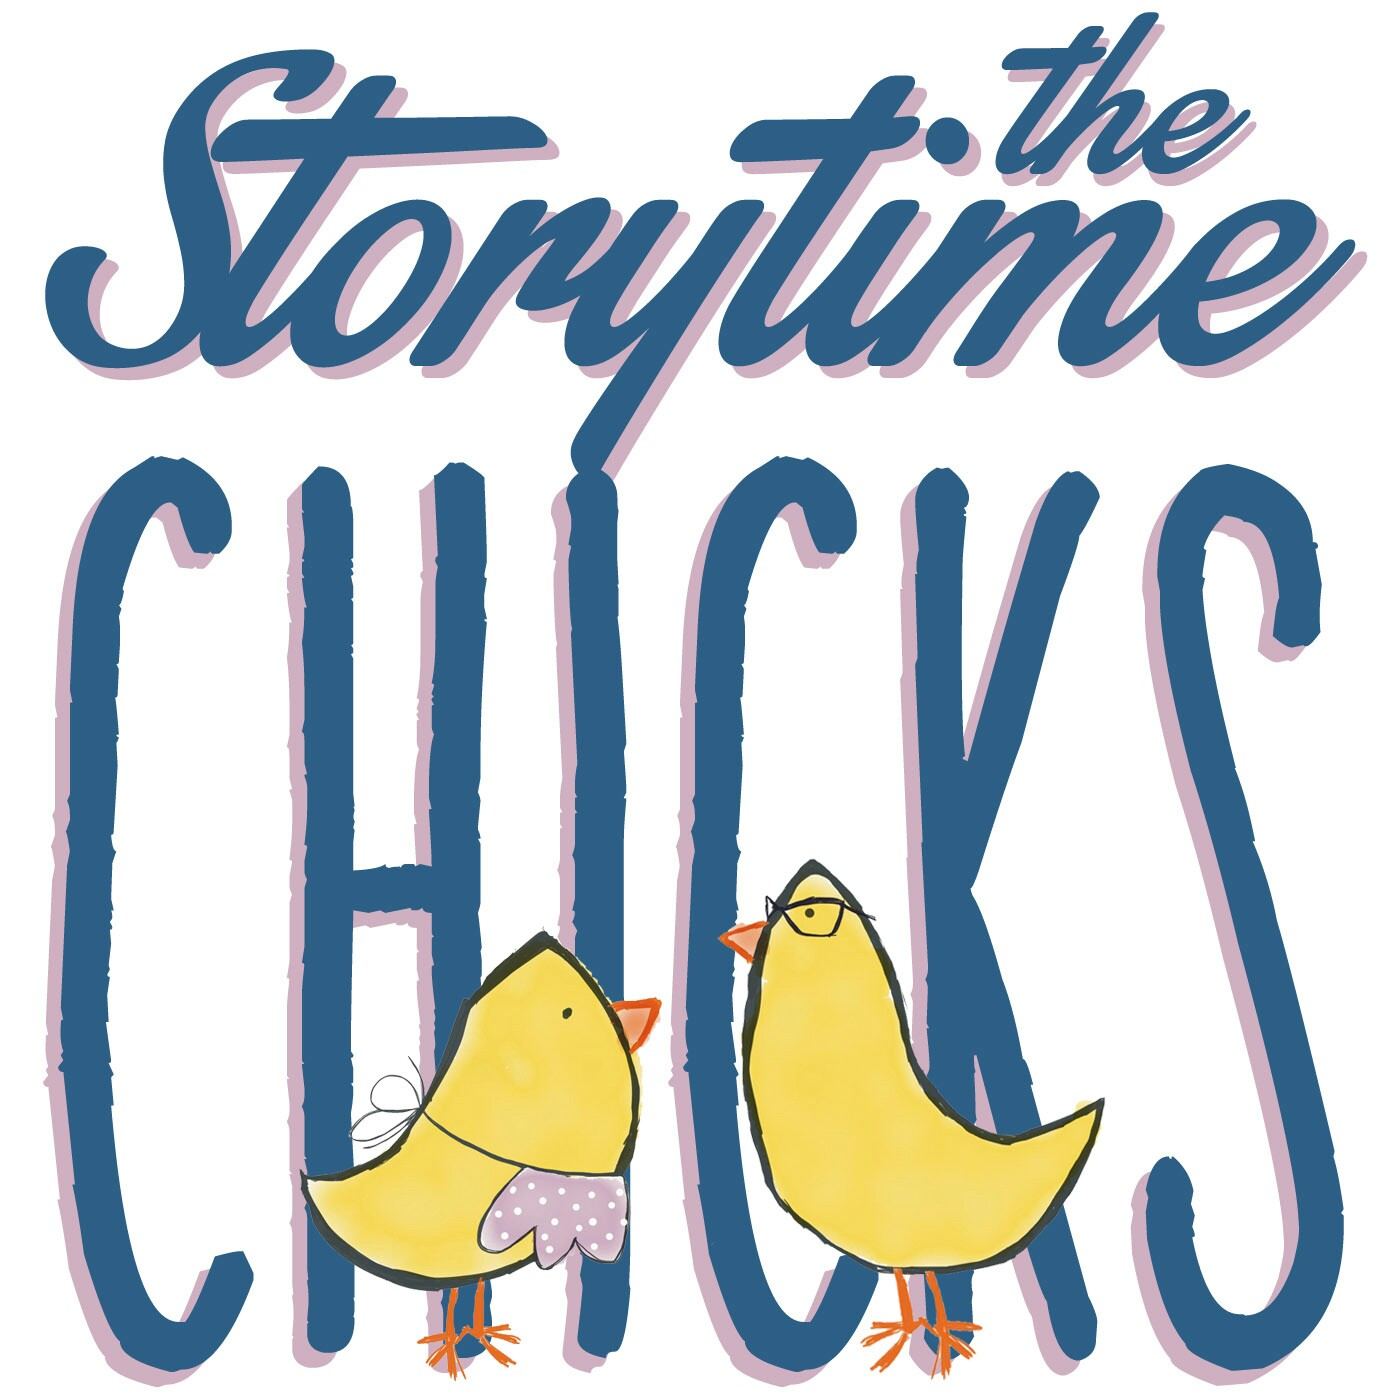 The Storytime Chicks